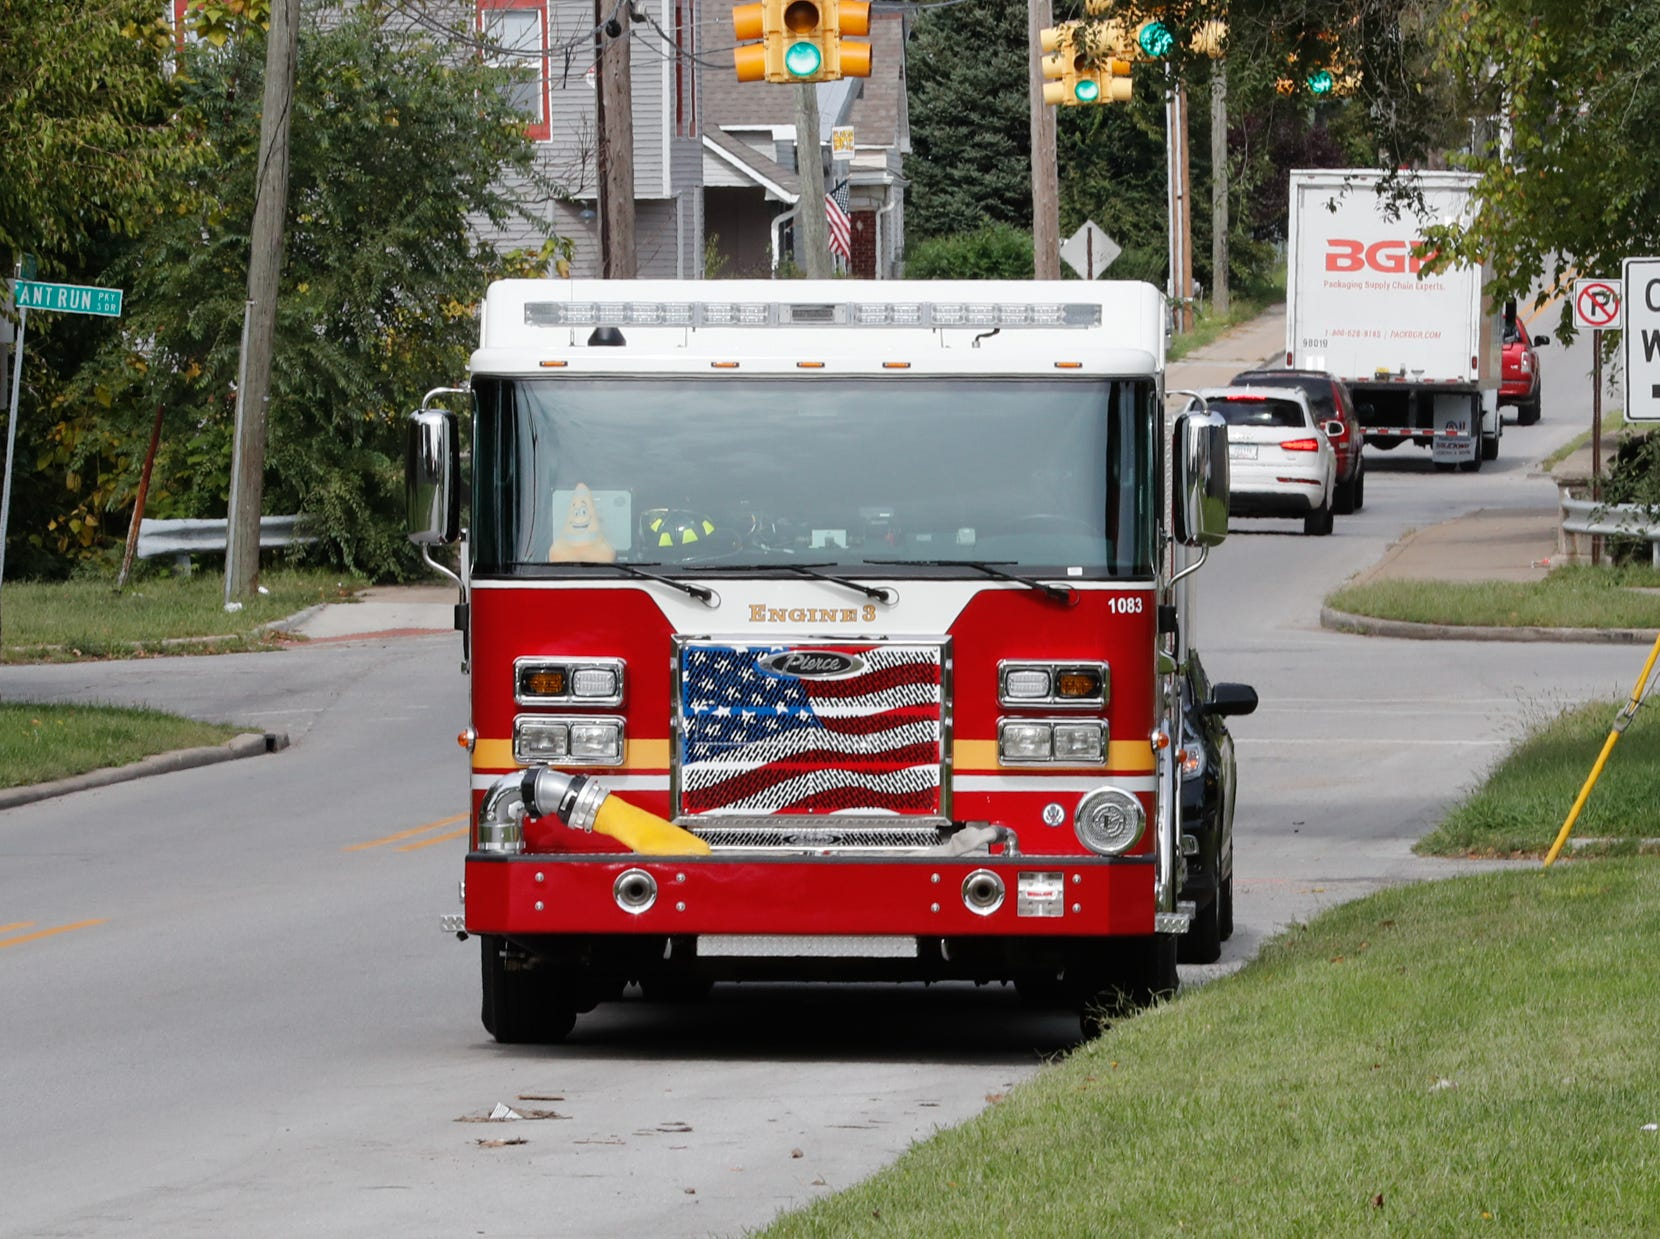 IFD Engine 3 parks near the intersection of Pleasant Run Parkway and State St. during IFD's home safety blitz in Indianapolis for National Fire Prevention Week, on Friday, October 12, 2018. IFD chose the area around IFD Station 15 which experienced 9 residential fires in 2018 for the blitz.